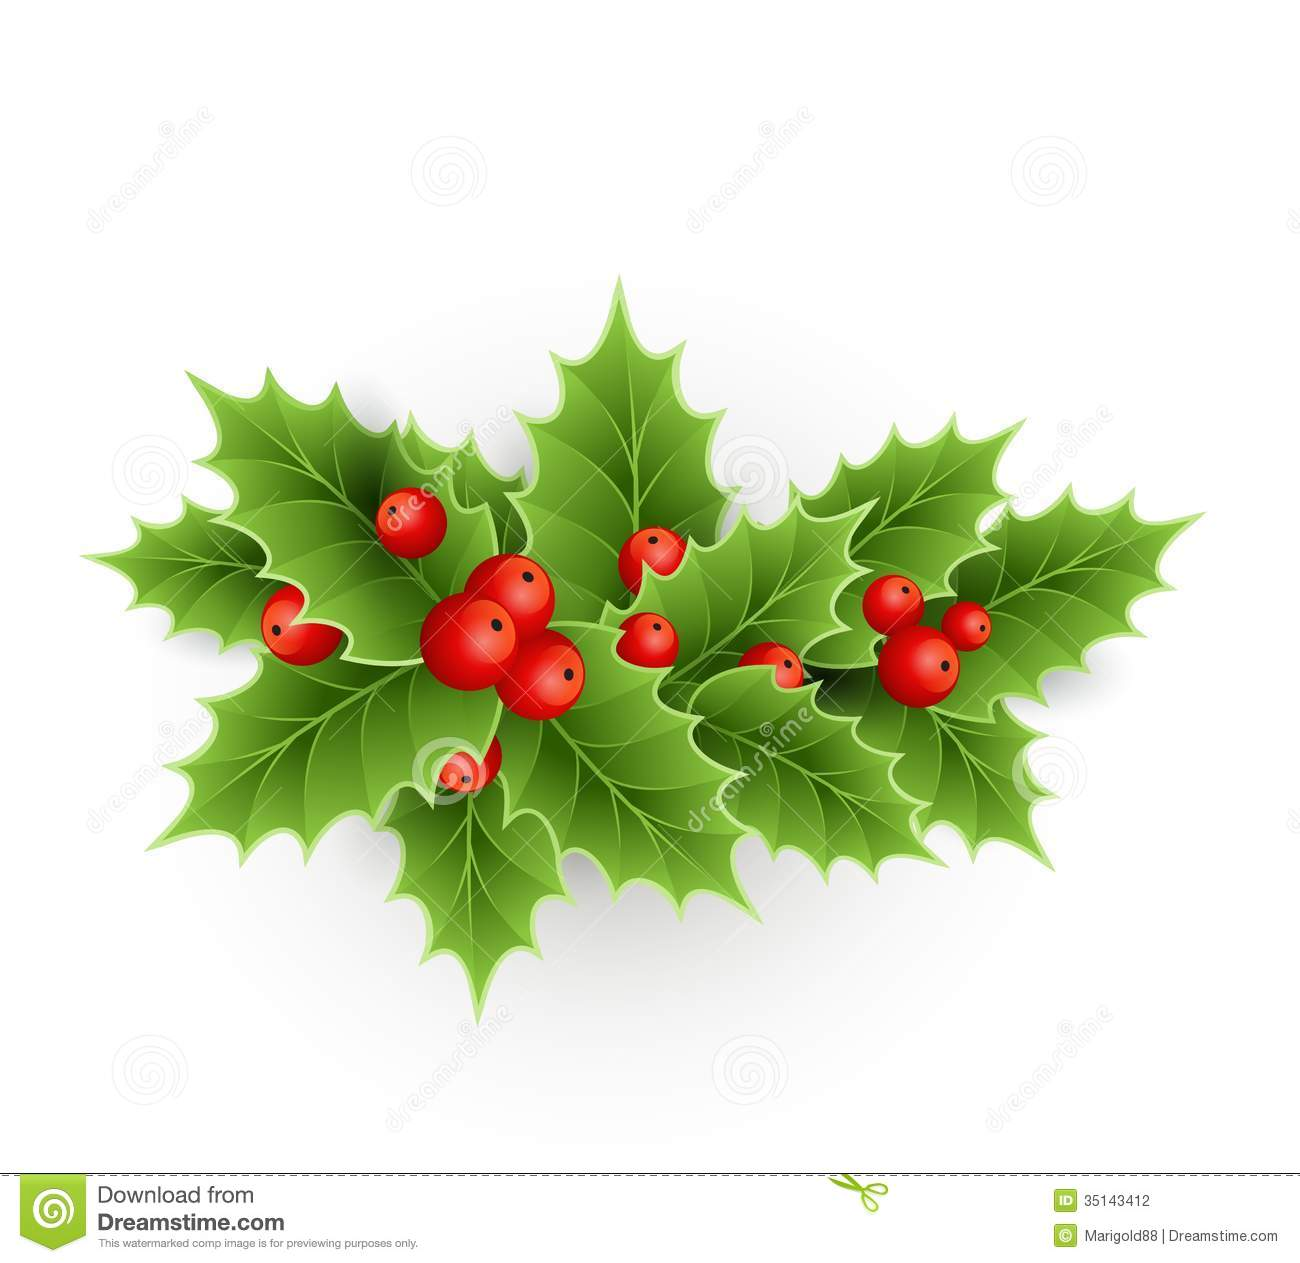 Christmas holly with berries stock vector illustration for Holl image